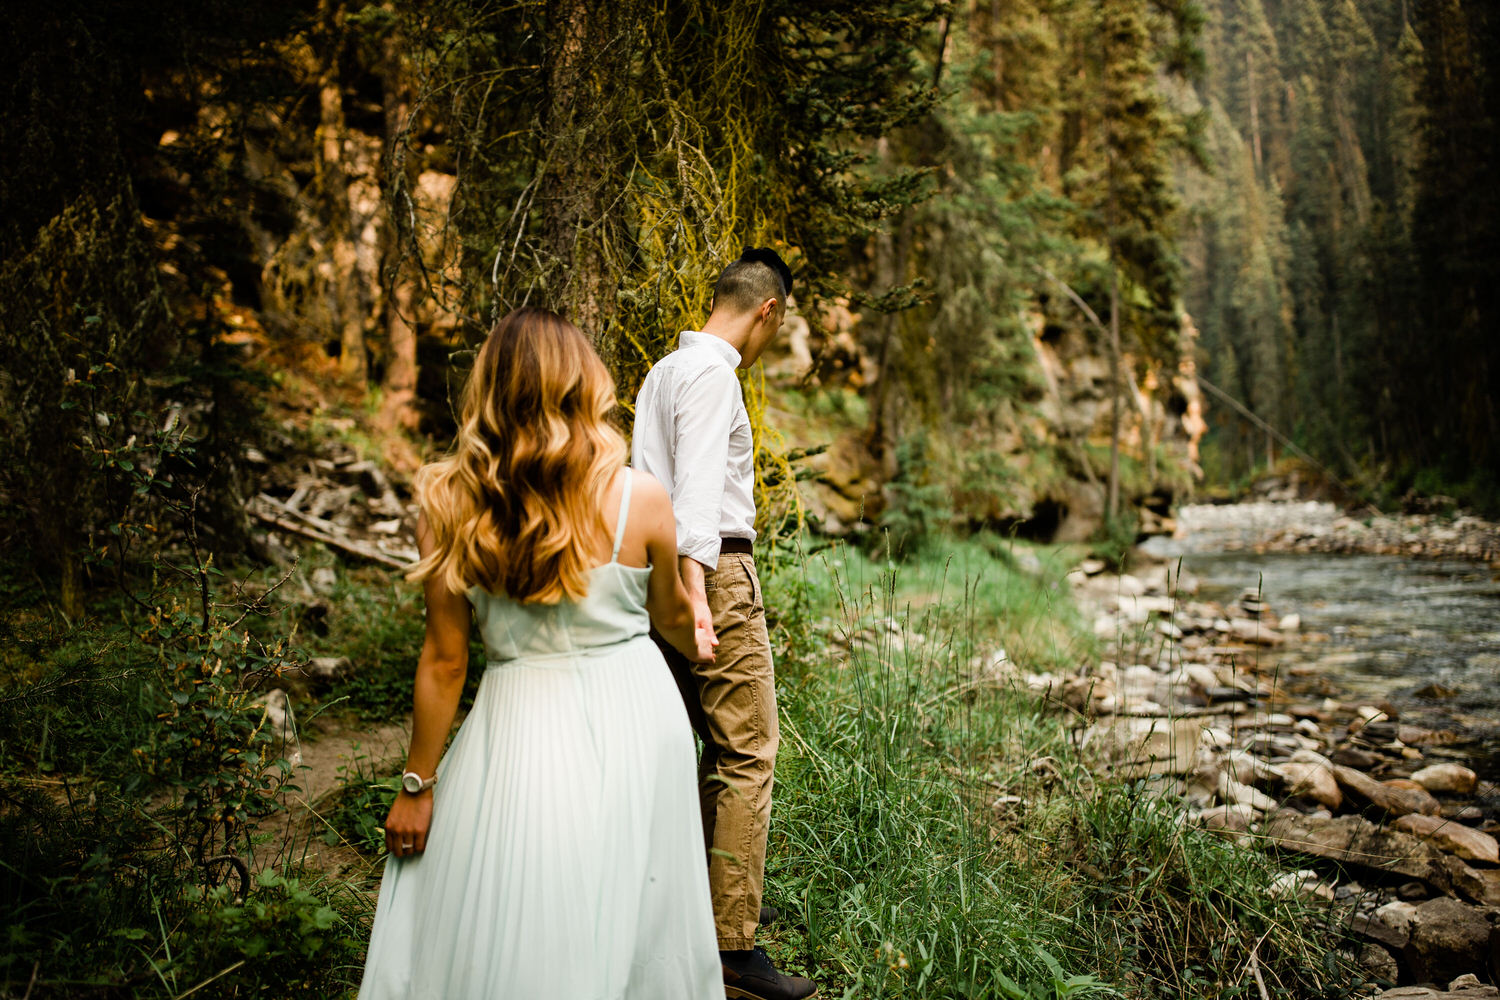 A newly engaged couple walking together along Johnston Canyon's flowing water